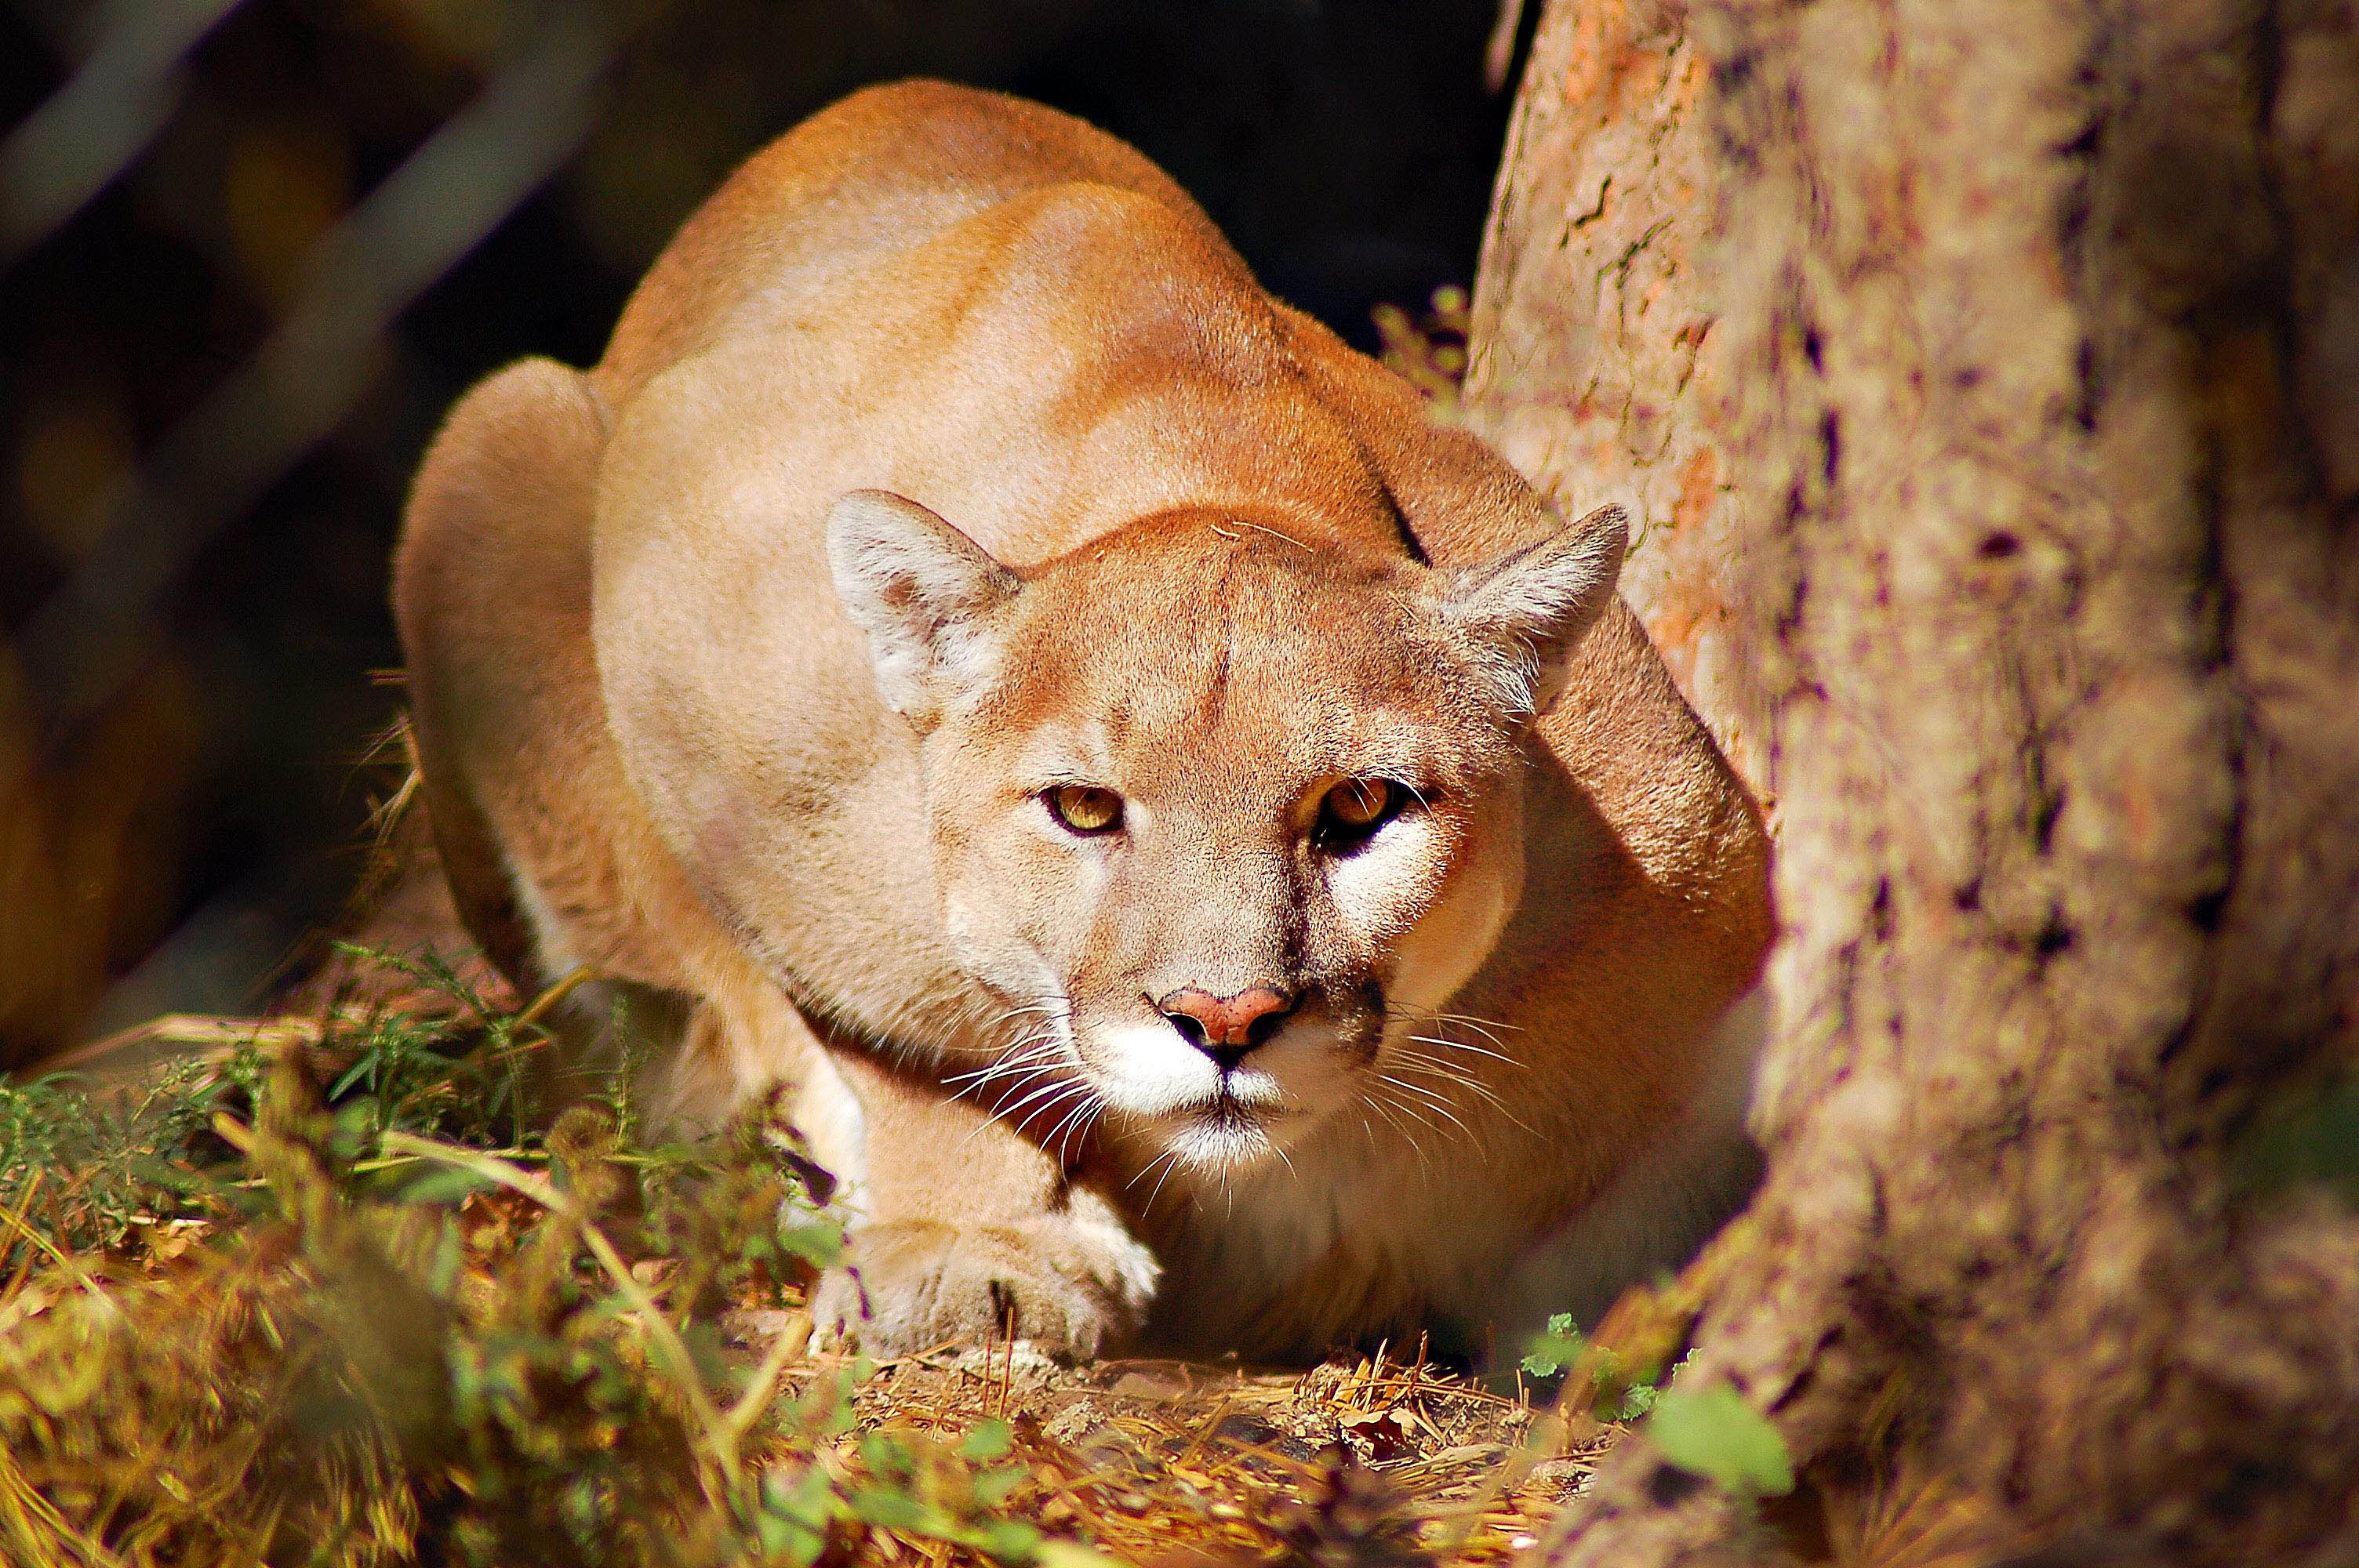 zionhill cougar women On wednesday, june 28, a five-member panel discussed the possibility of bringing, or rewilding, a permanent population of mountain lions, or cougars, to the east.